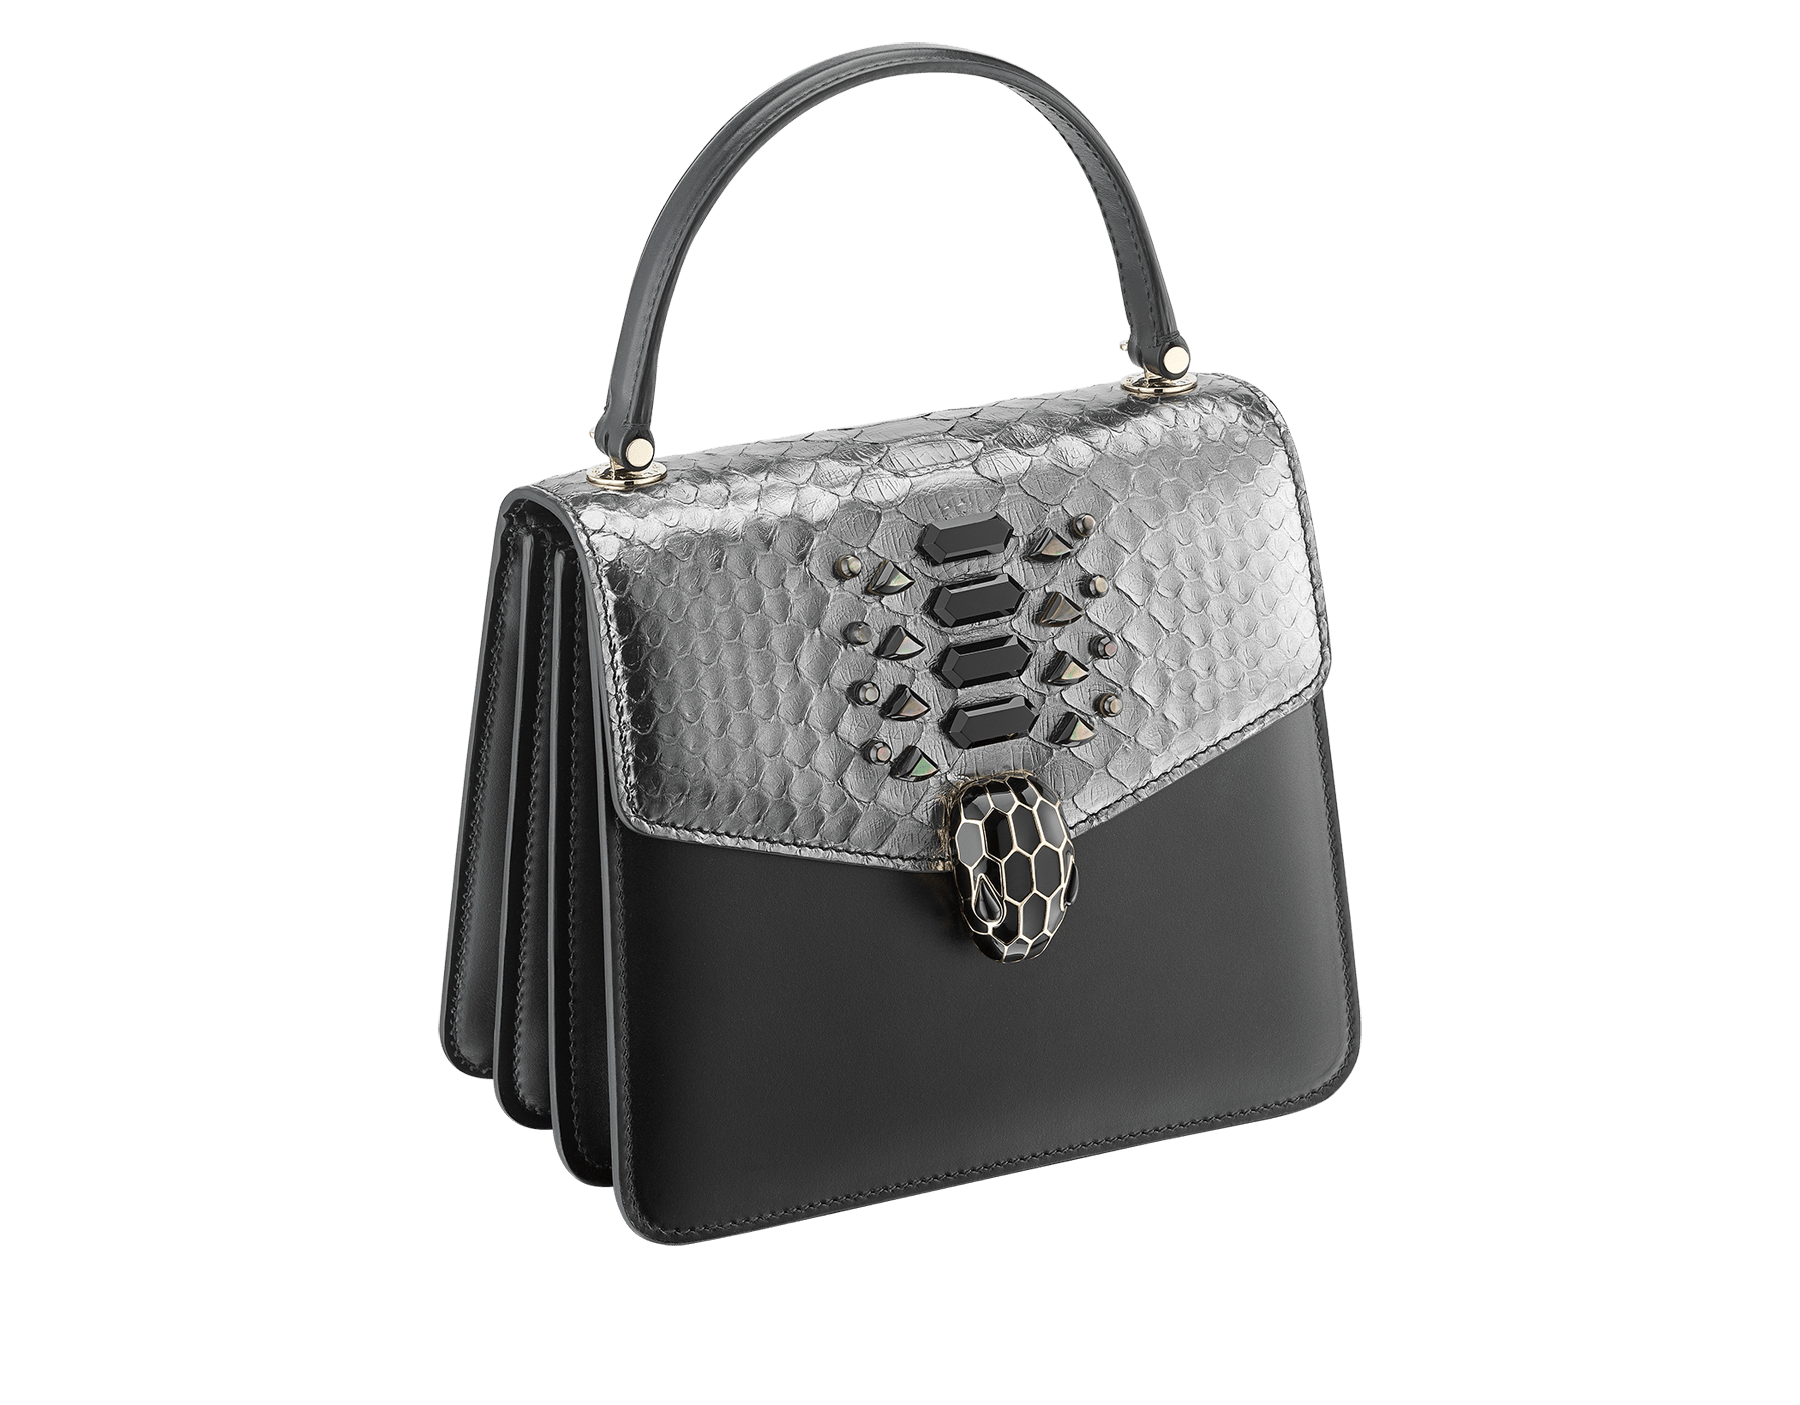 """Serpenti Forever "" crossbody bag in dark silver python skin flap with onyx scales applied and black smooth calf leather body. Iconic snake head closure in light gold plated brass enriched with black enamel and black onyx eyes. 289419 image 2"